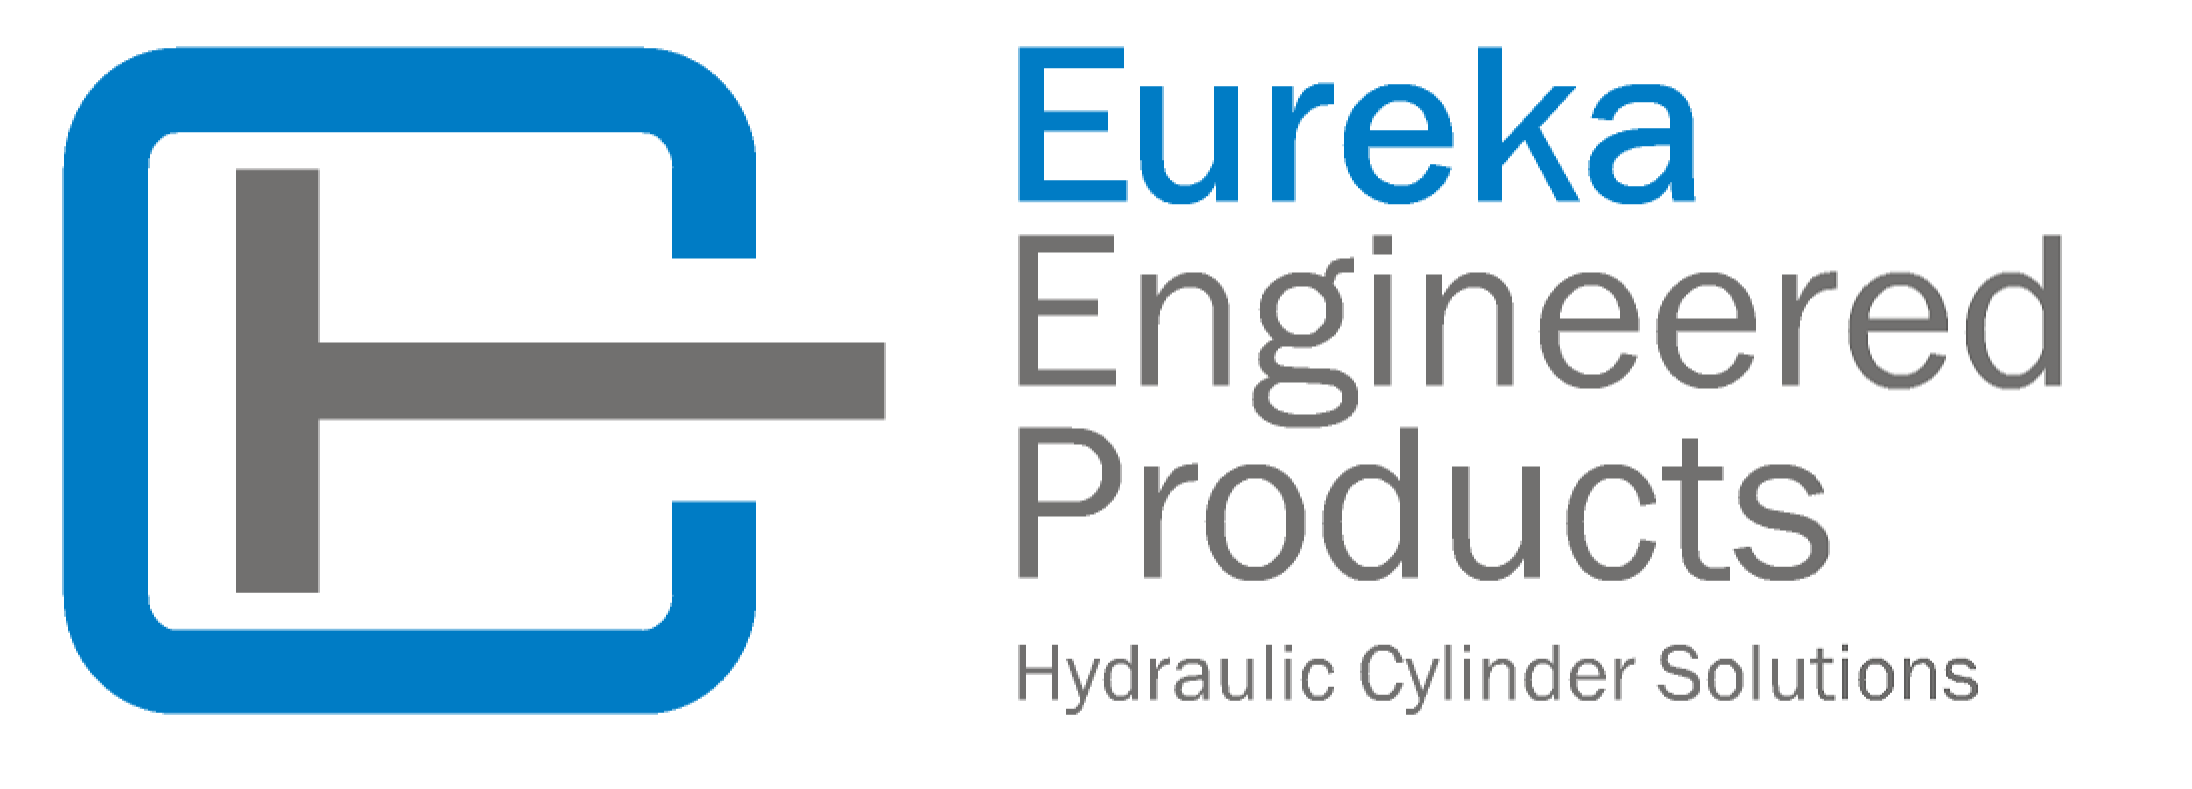 Eureka Engineered Products